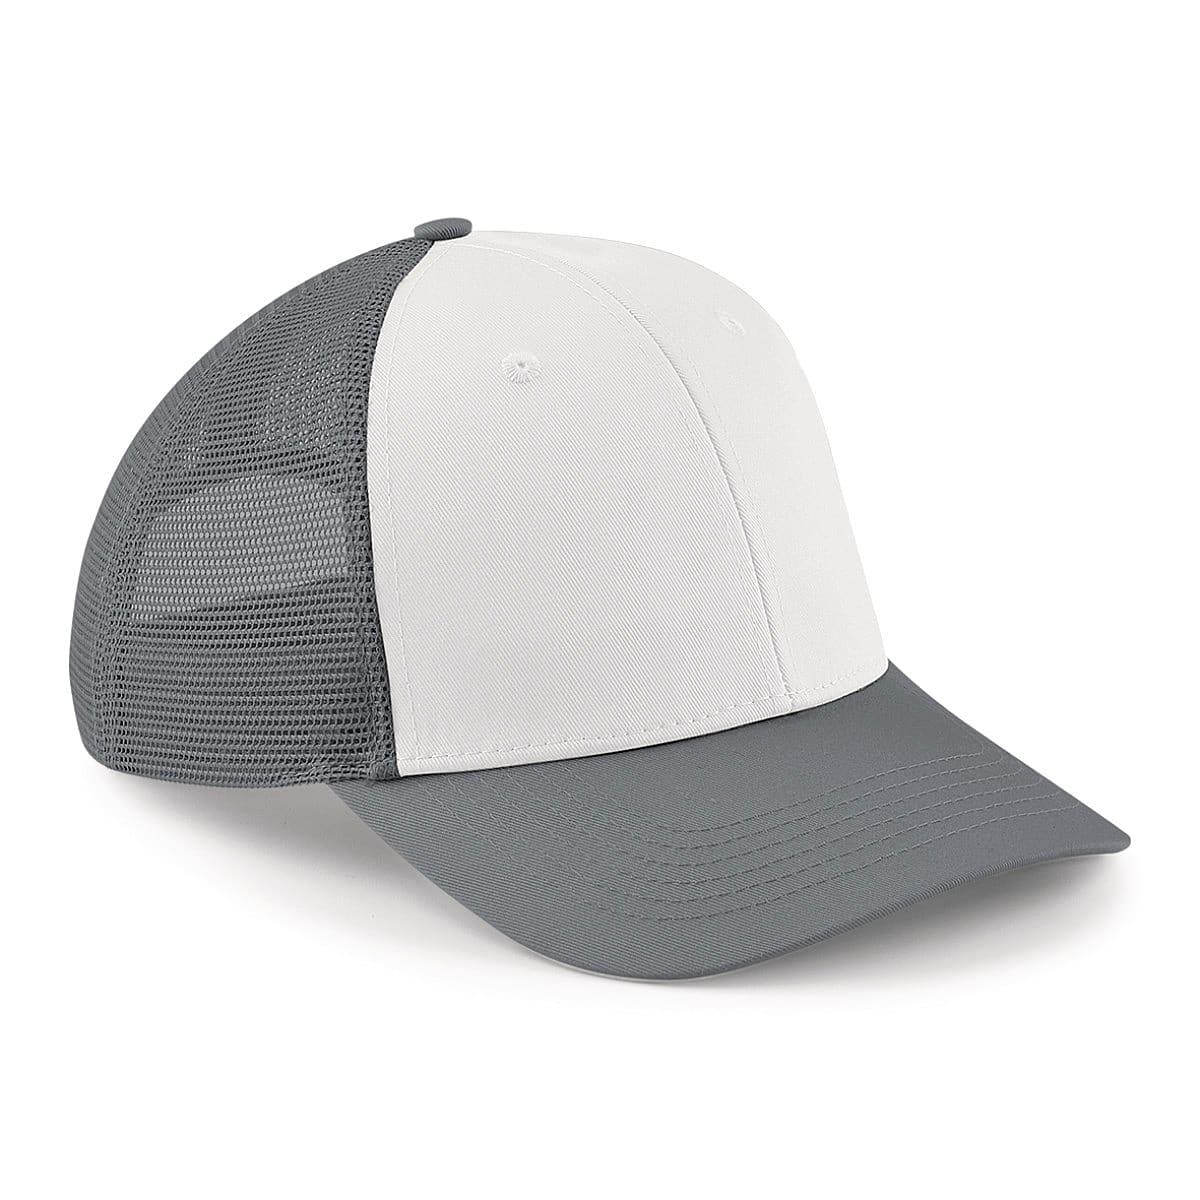 Beechfield 6 Panel Snapback Trucker Cap in Graphite / White (Product Code: B647)